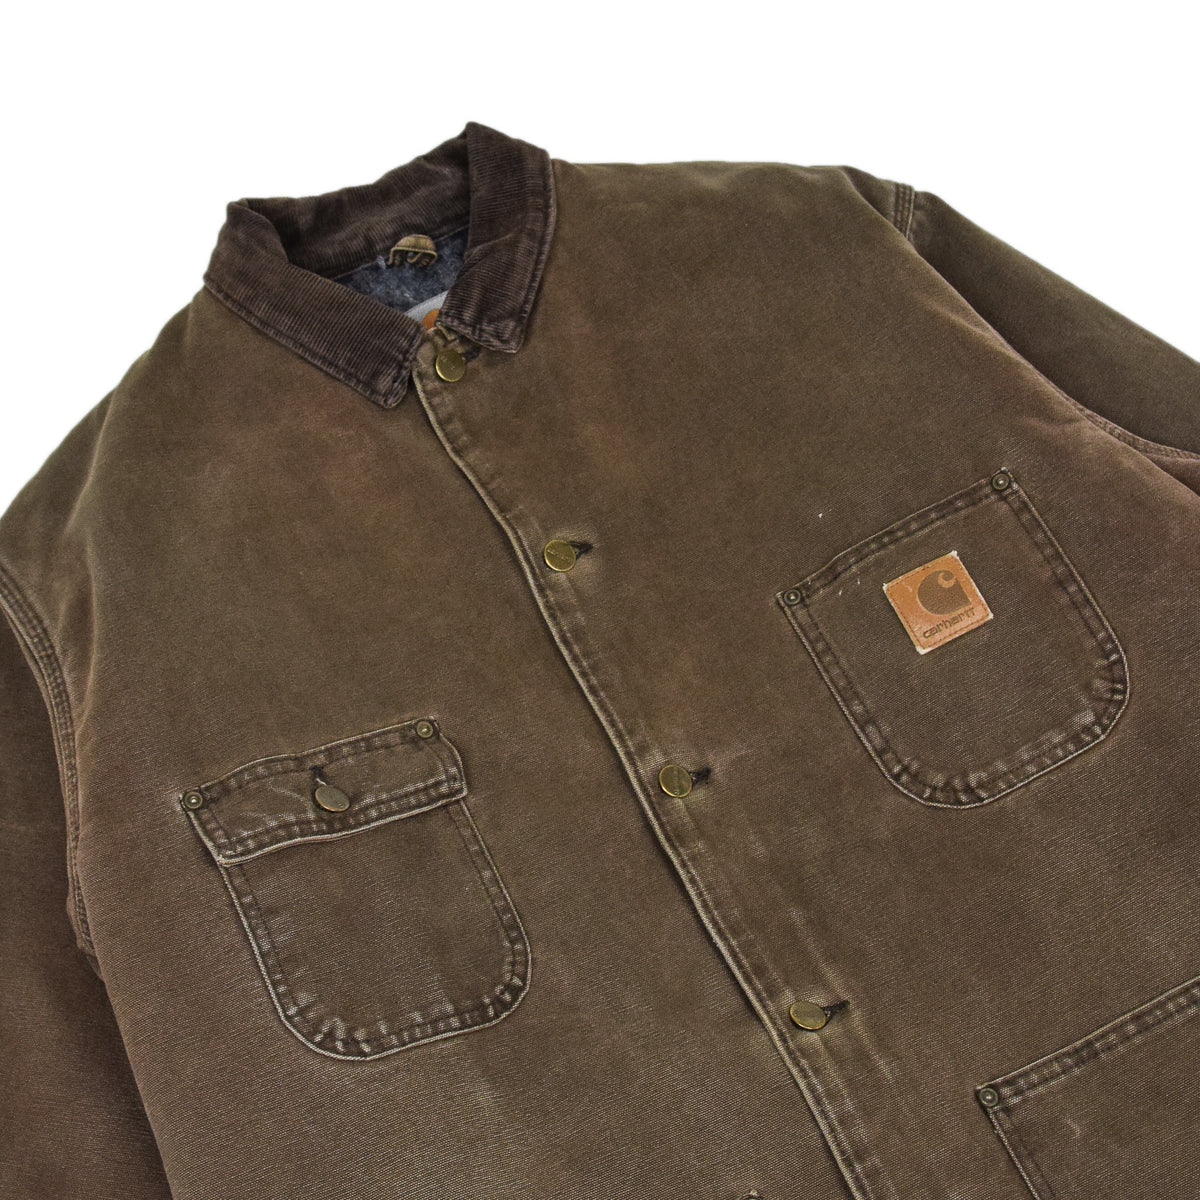 Vintage Carhartt Michigan Blanket Lined Brown Worker Chore Jacket Made in USA XL chest details